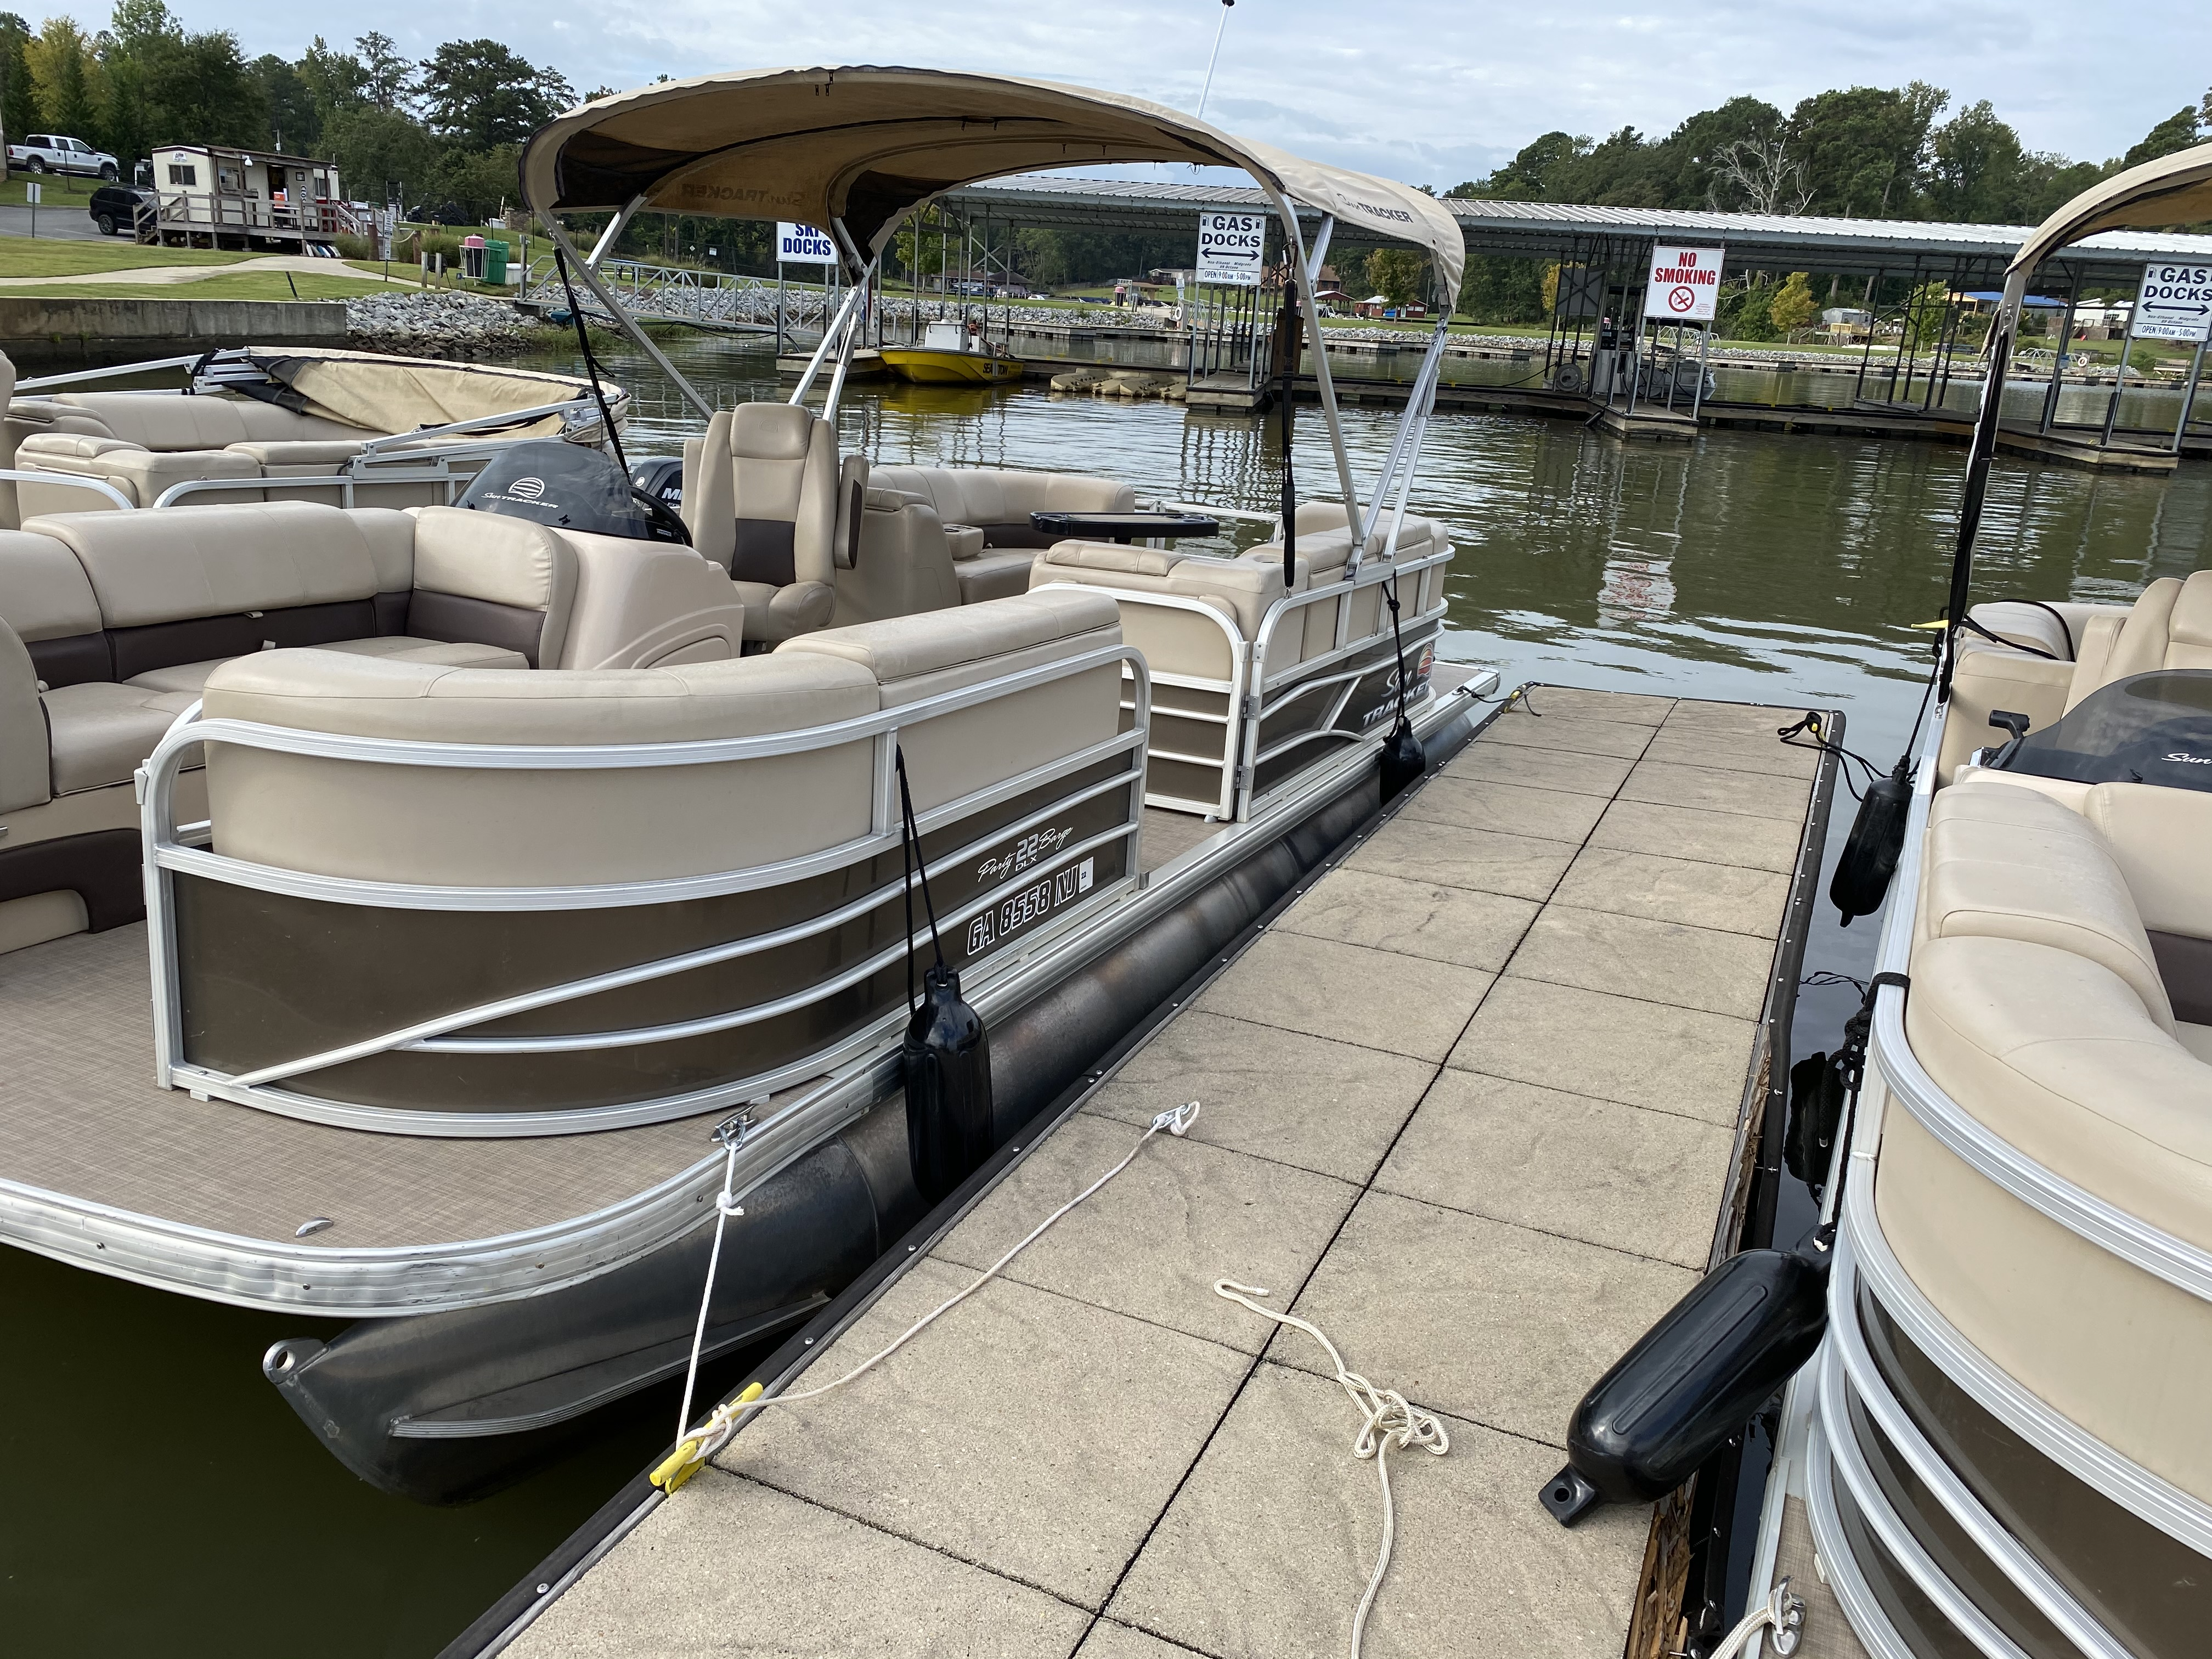 2019 Sun Tracker boat for sale, model of the boat is PARTY BARGE 22 w/ Mercury 115 ELPT 4S & Image # 14 of 26